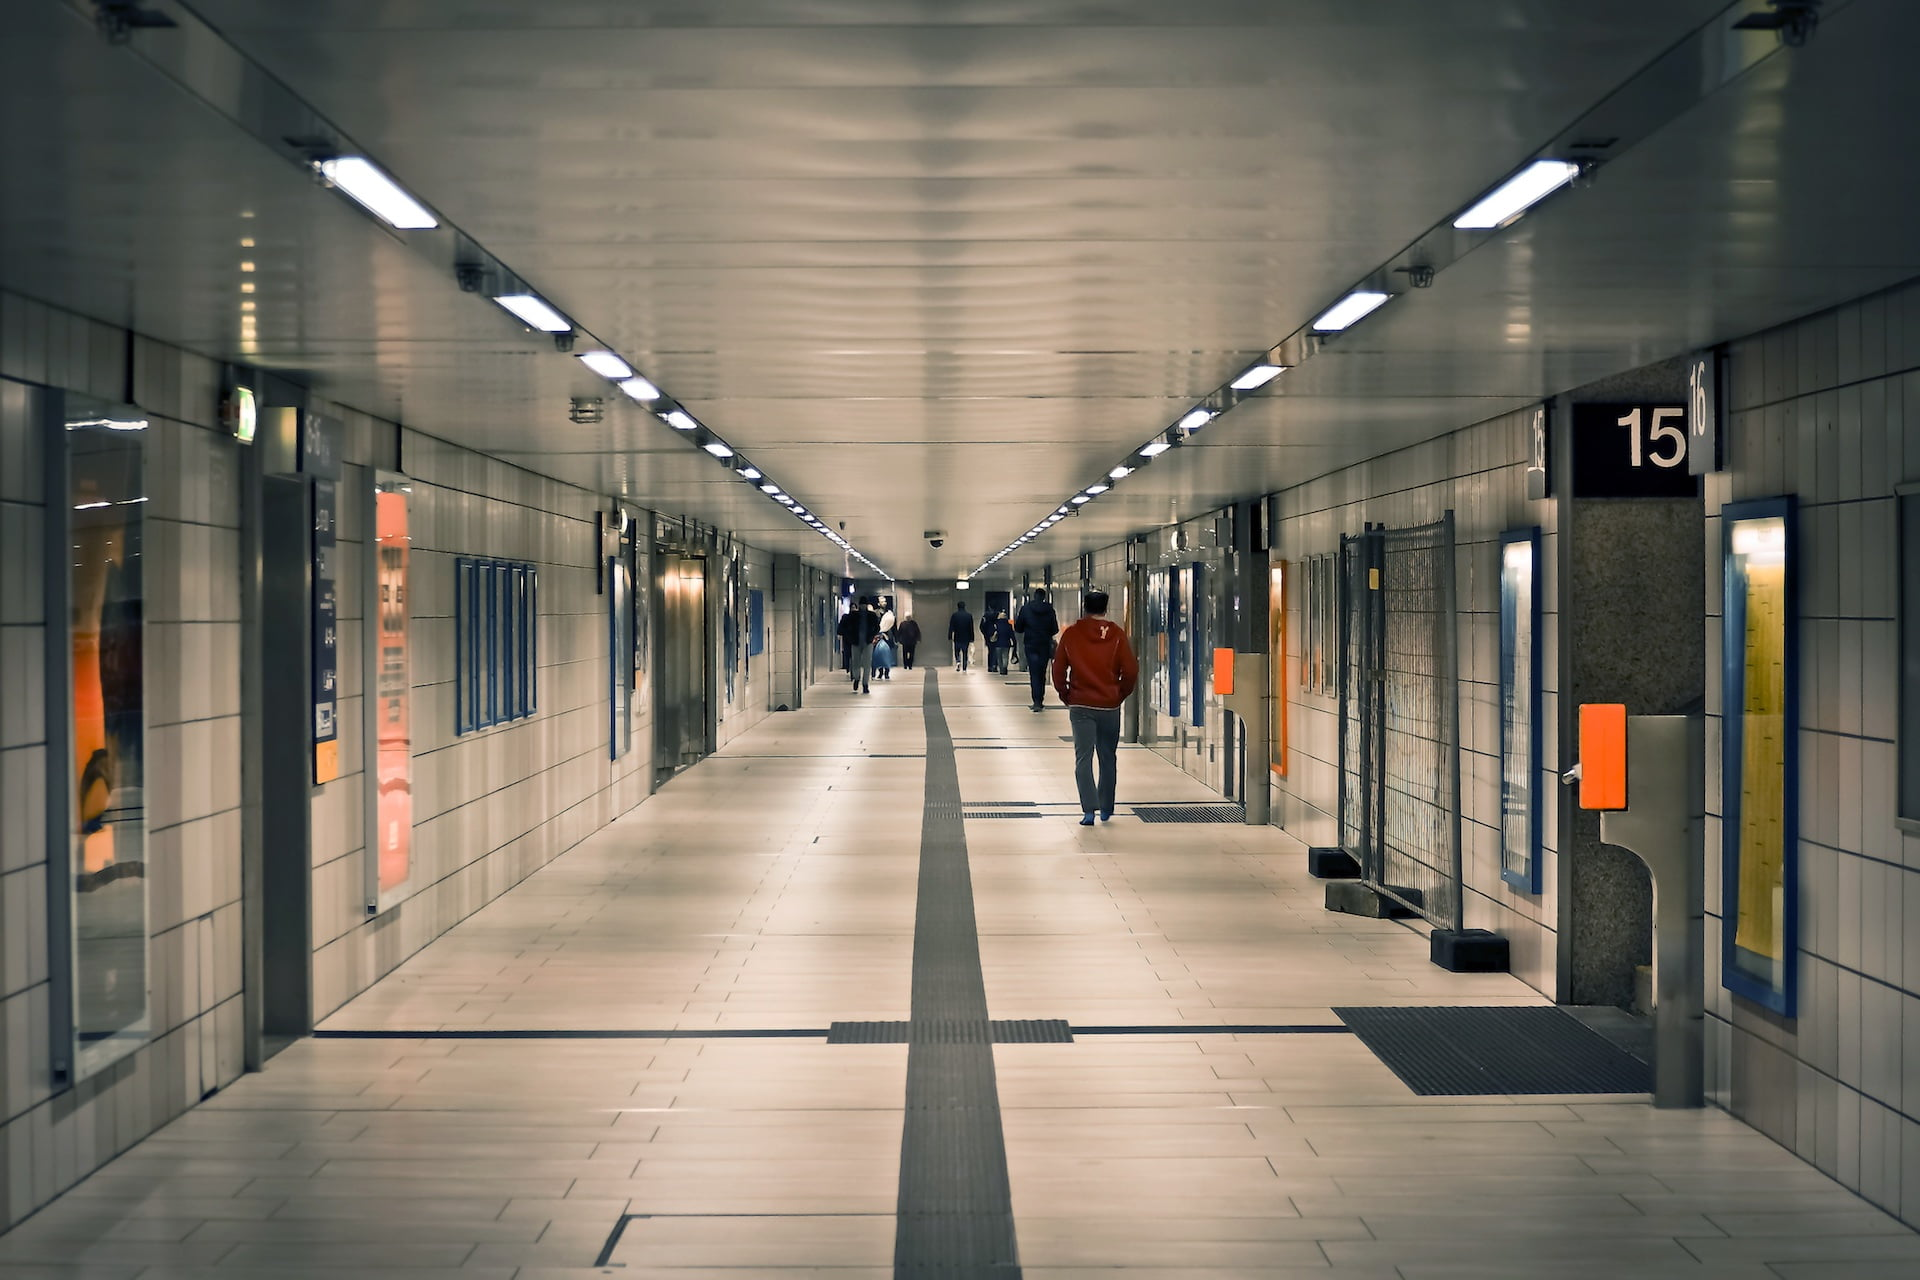 MRT street architecture building business groups lonely way 1 1 殘影的傷|蓁詩選